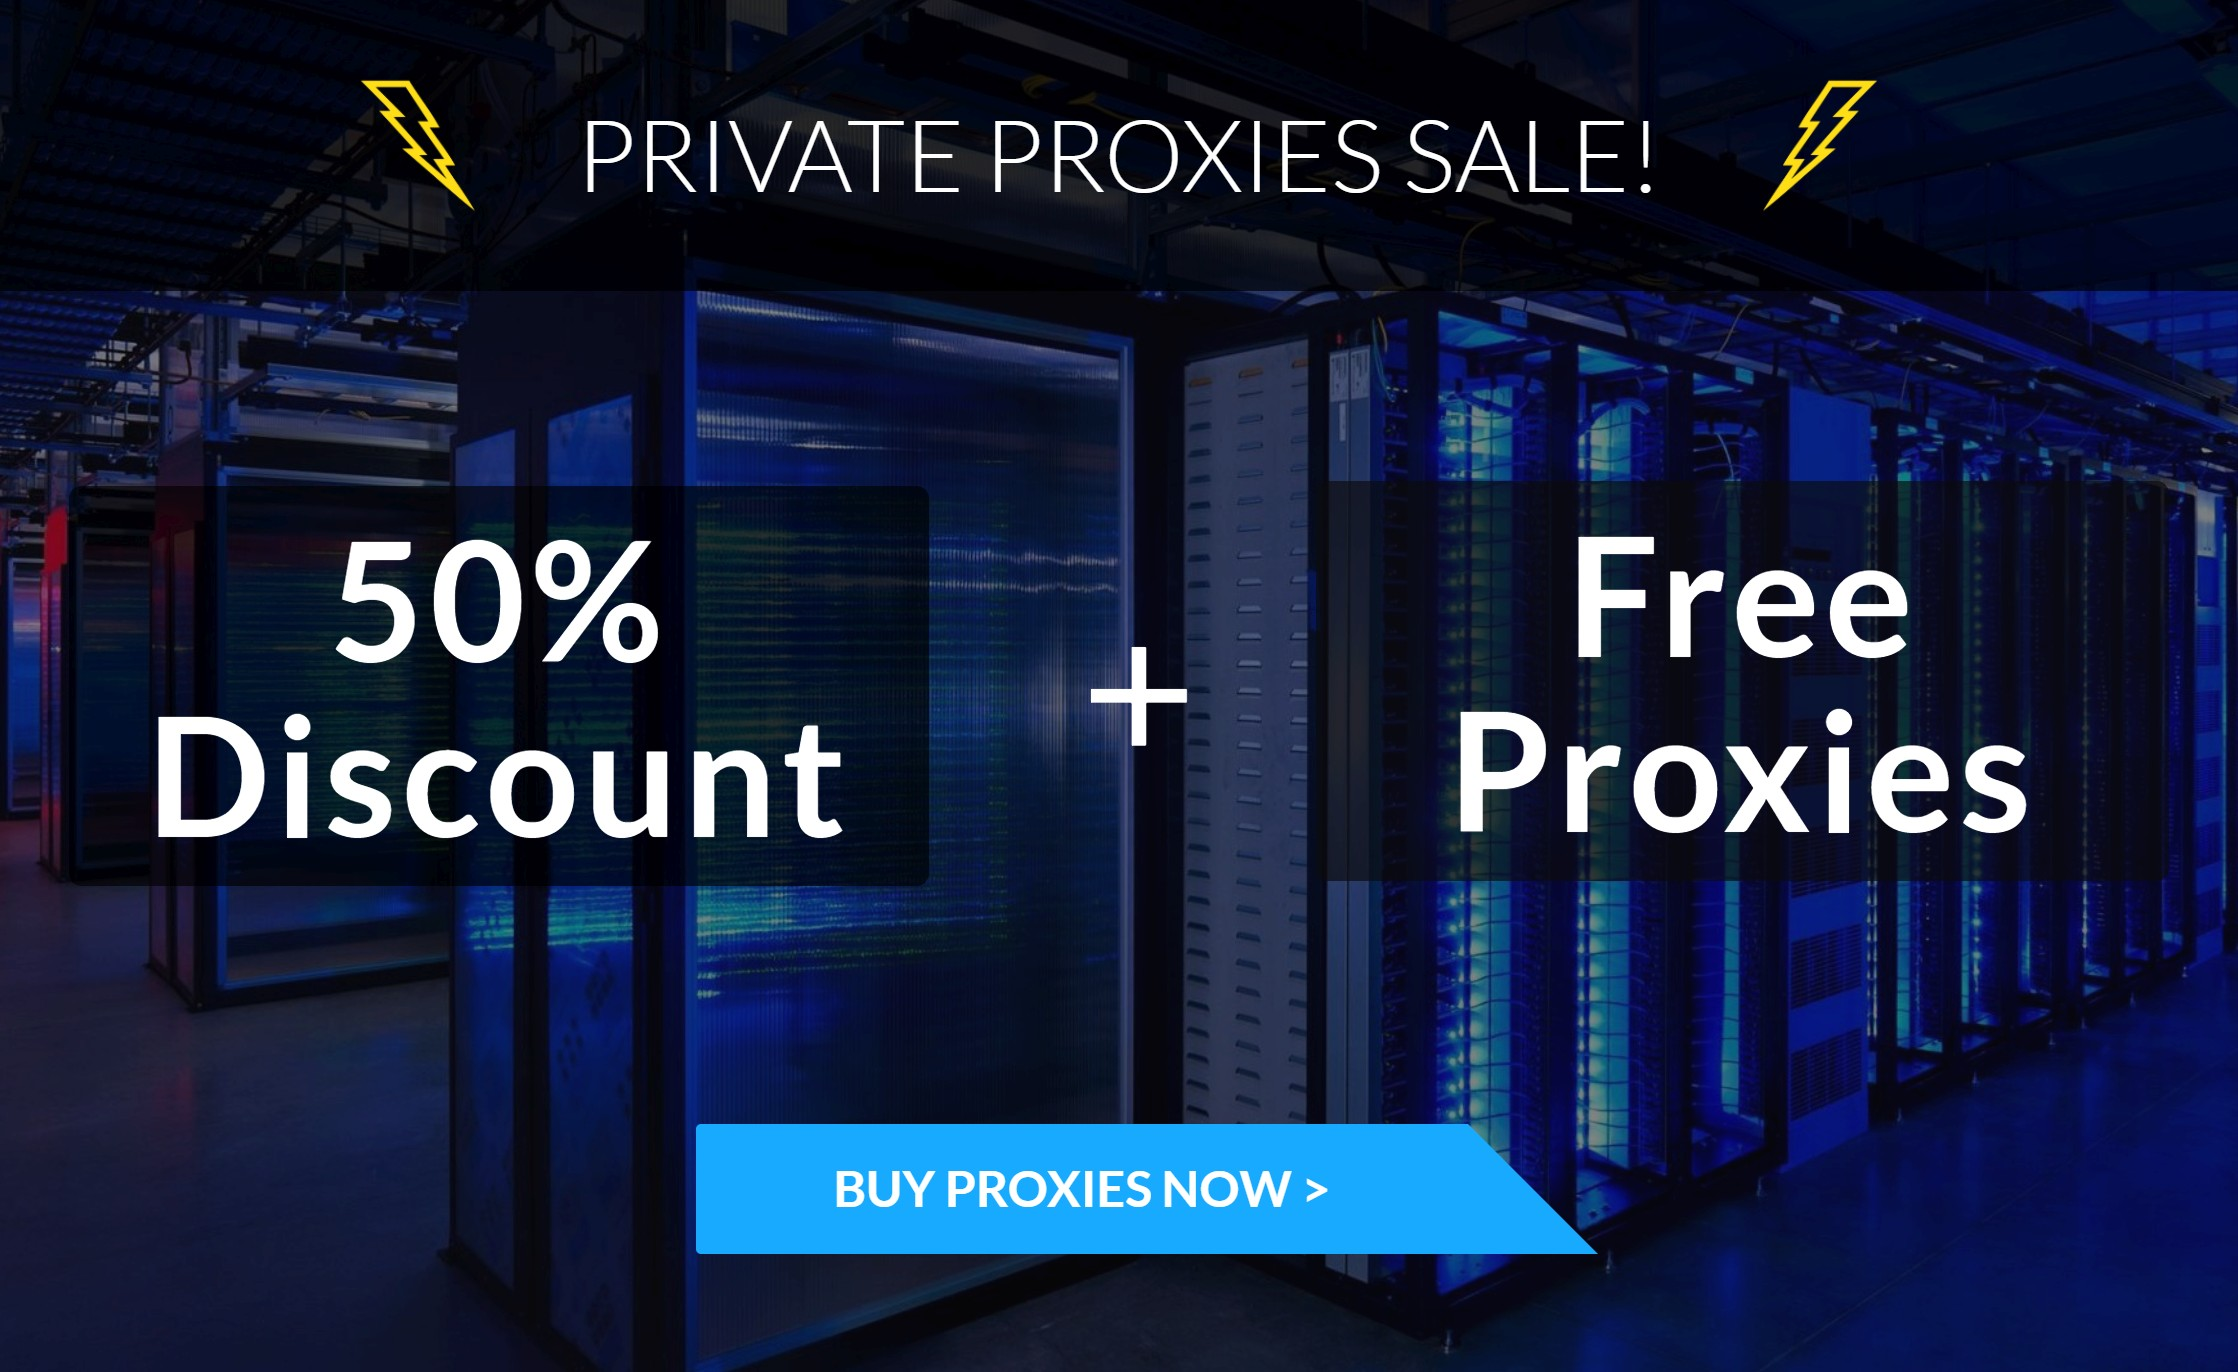 Dreamproxies private proxy sale